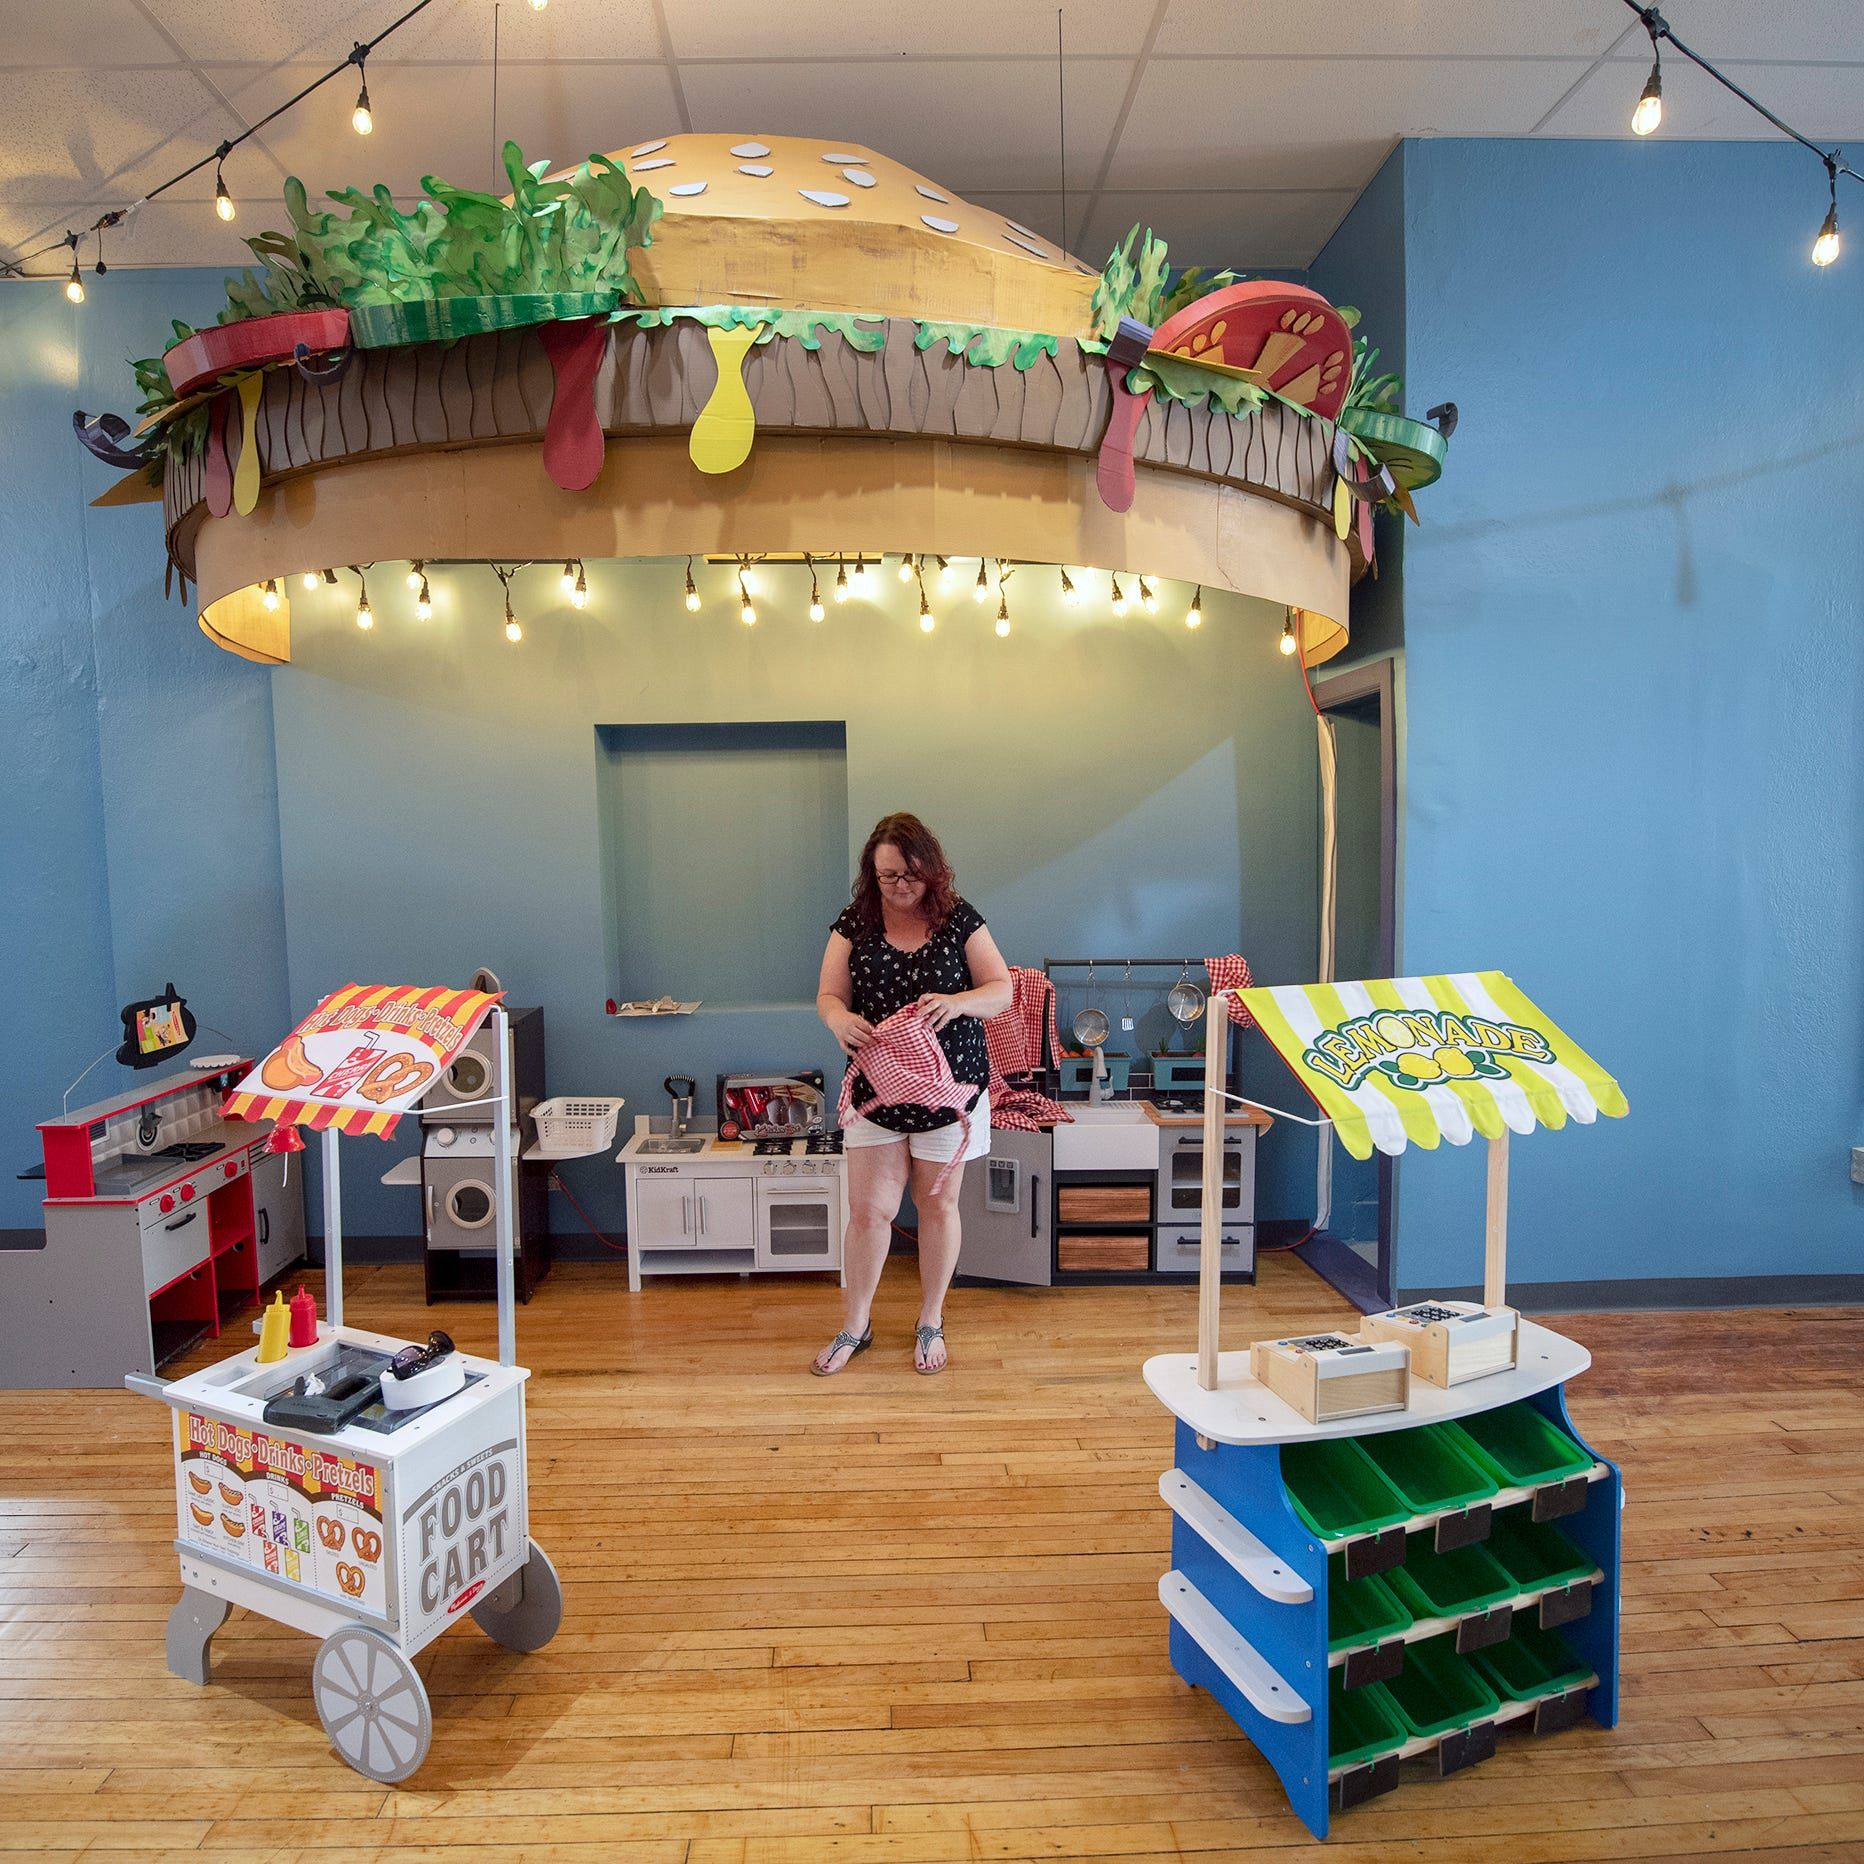 Hanging burgers & giant toadstools, Curious Little Playhouse reimagines downtown York space